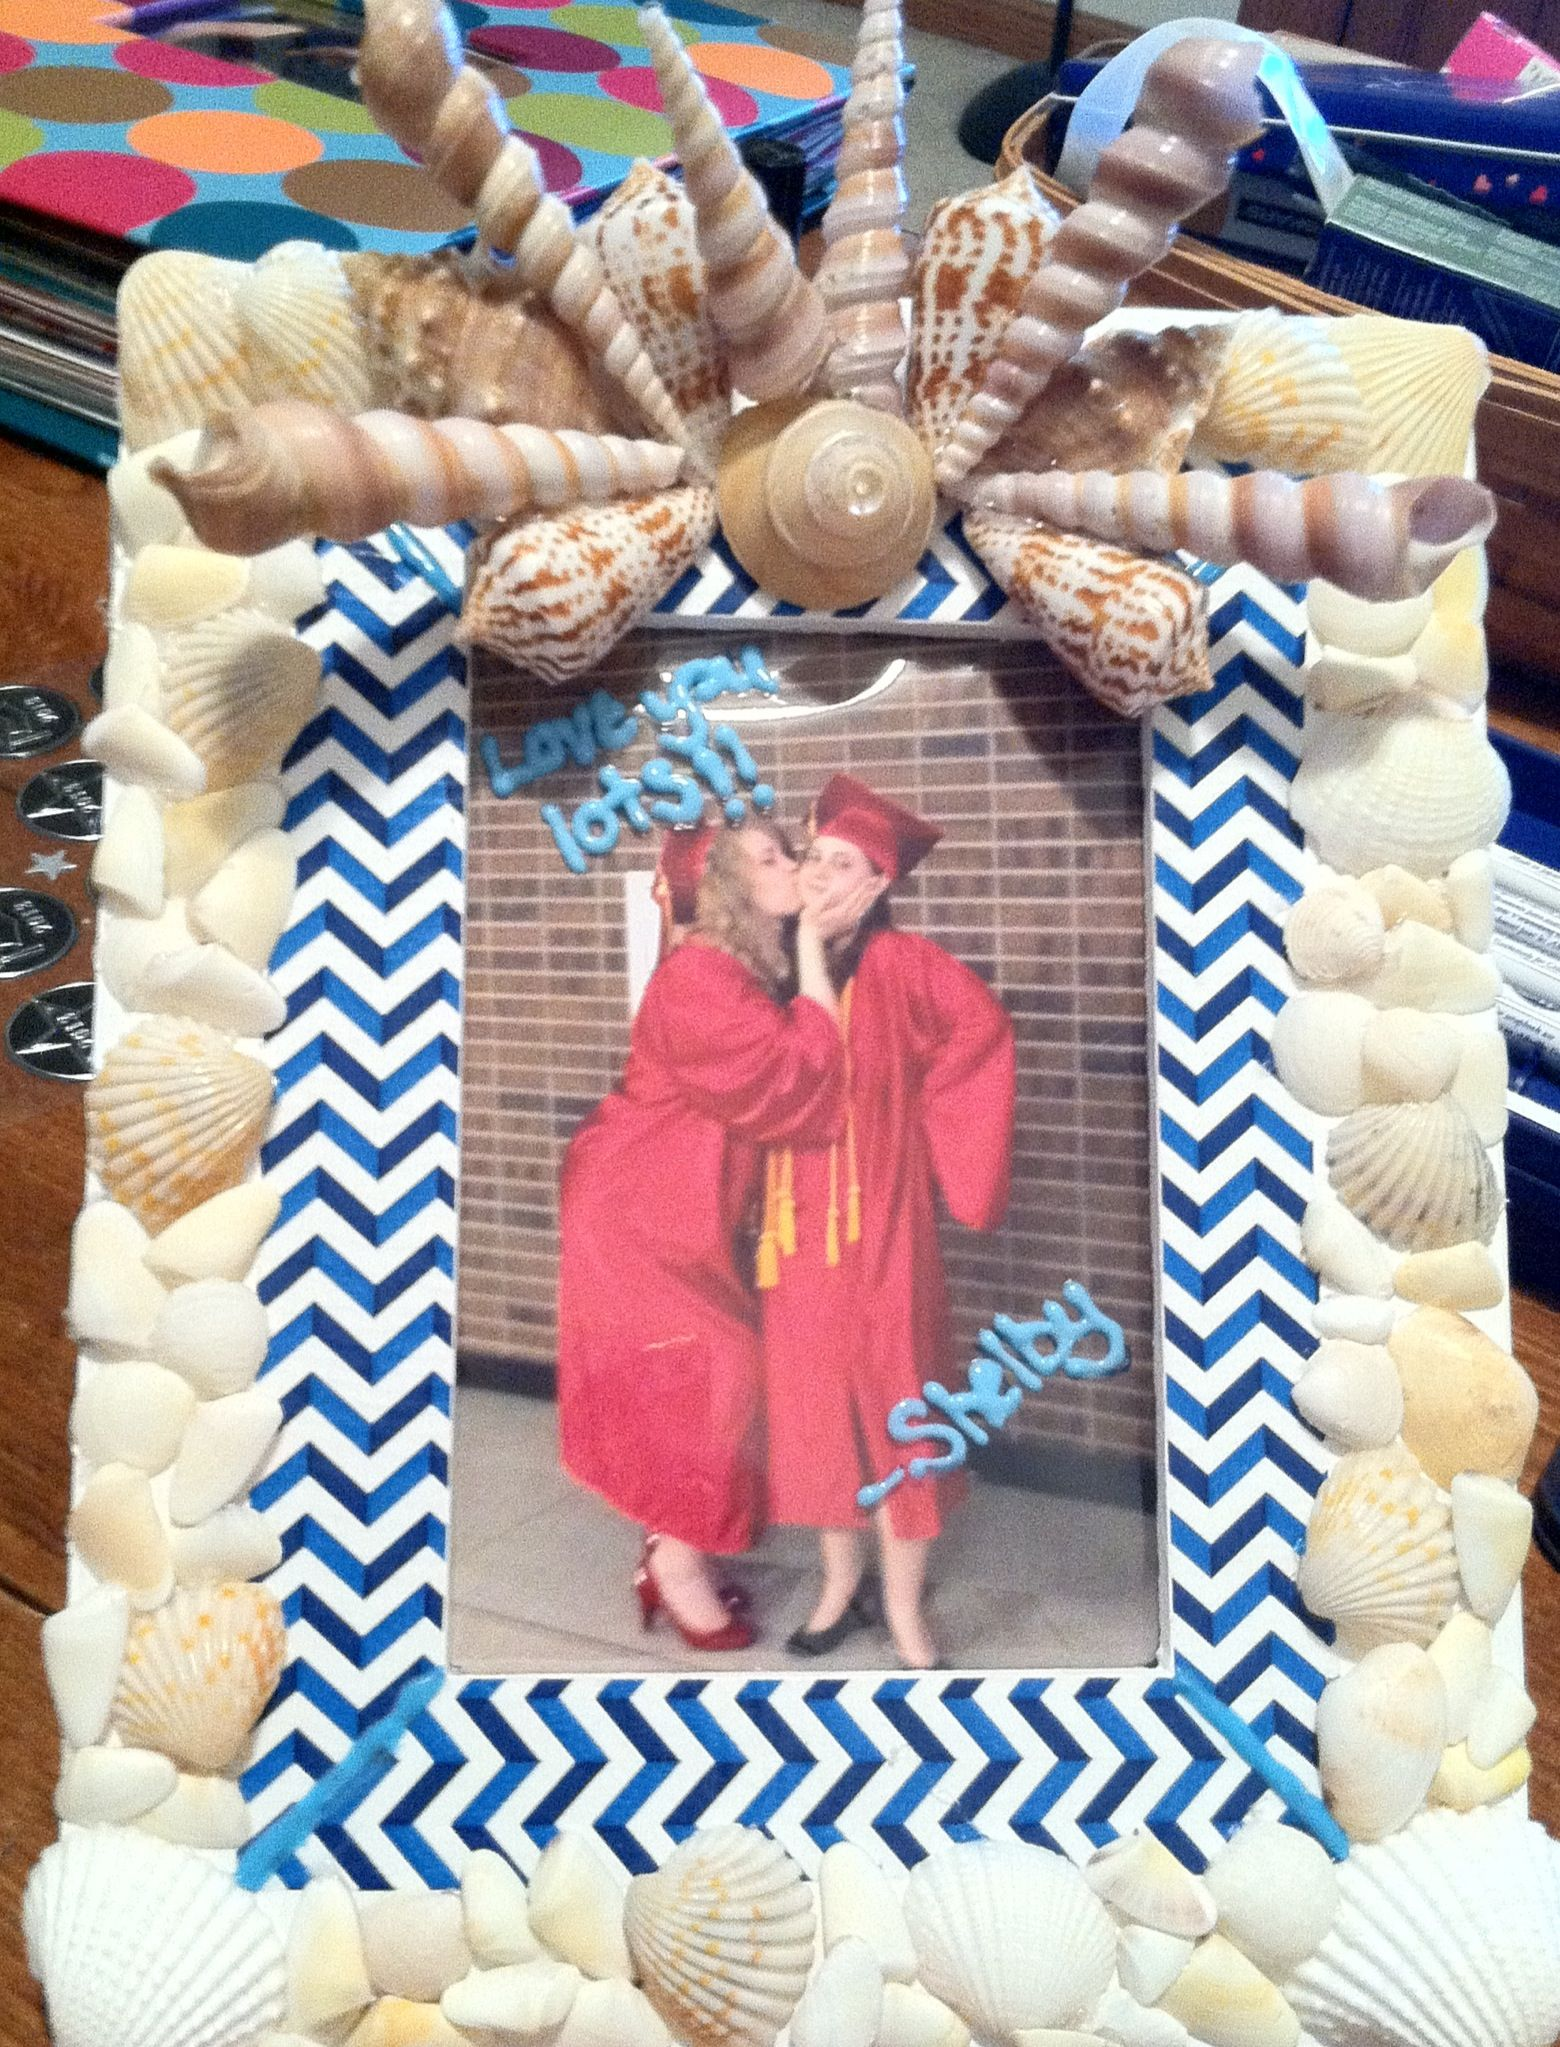 My Best Friends Homemade Going Away Gift Picture Frame Decorated